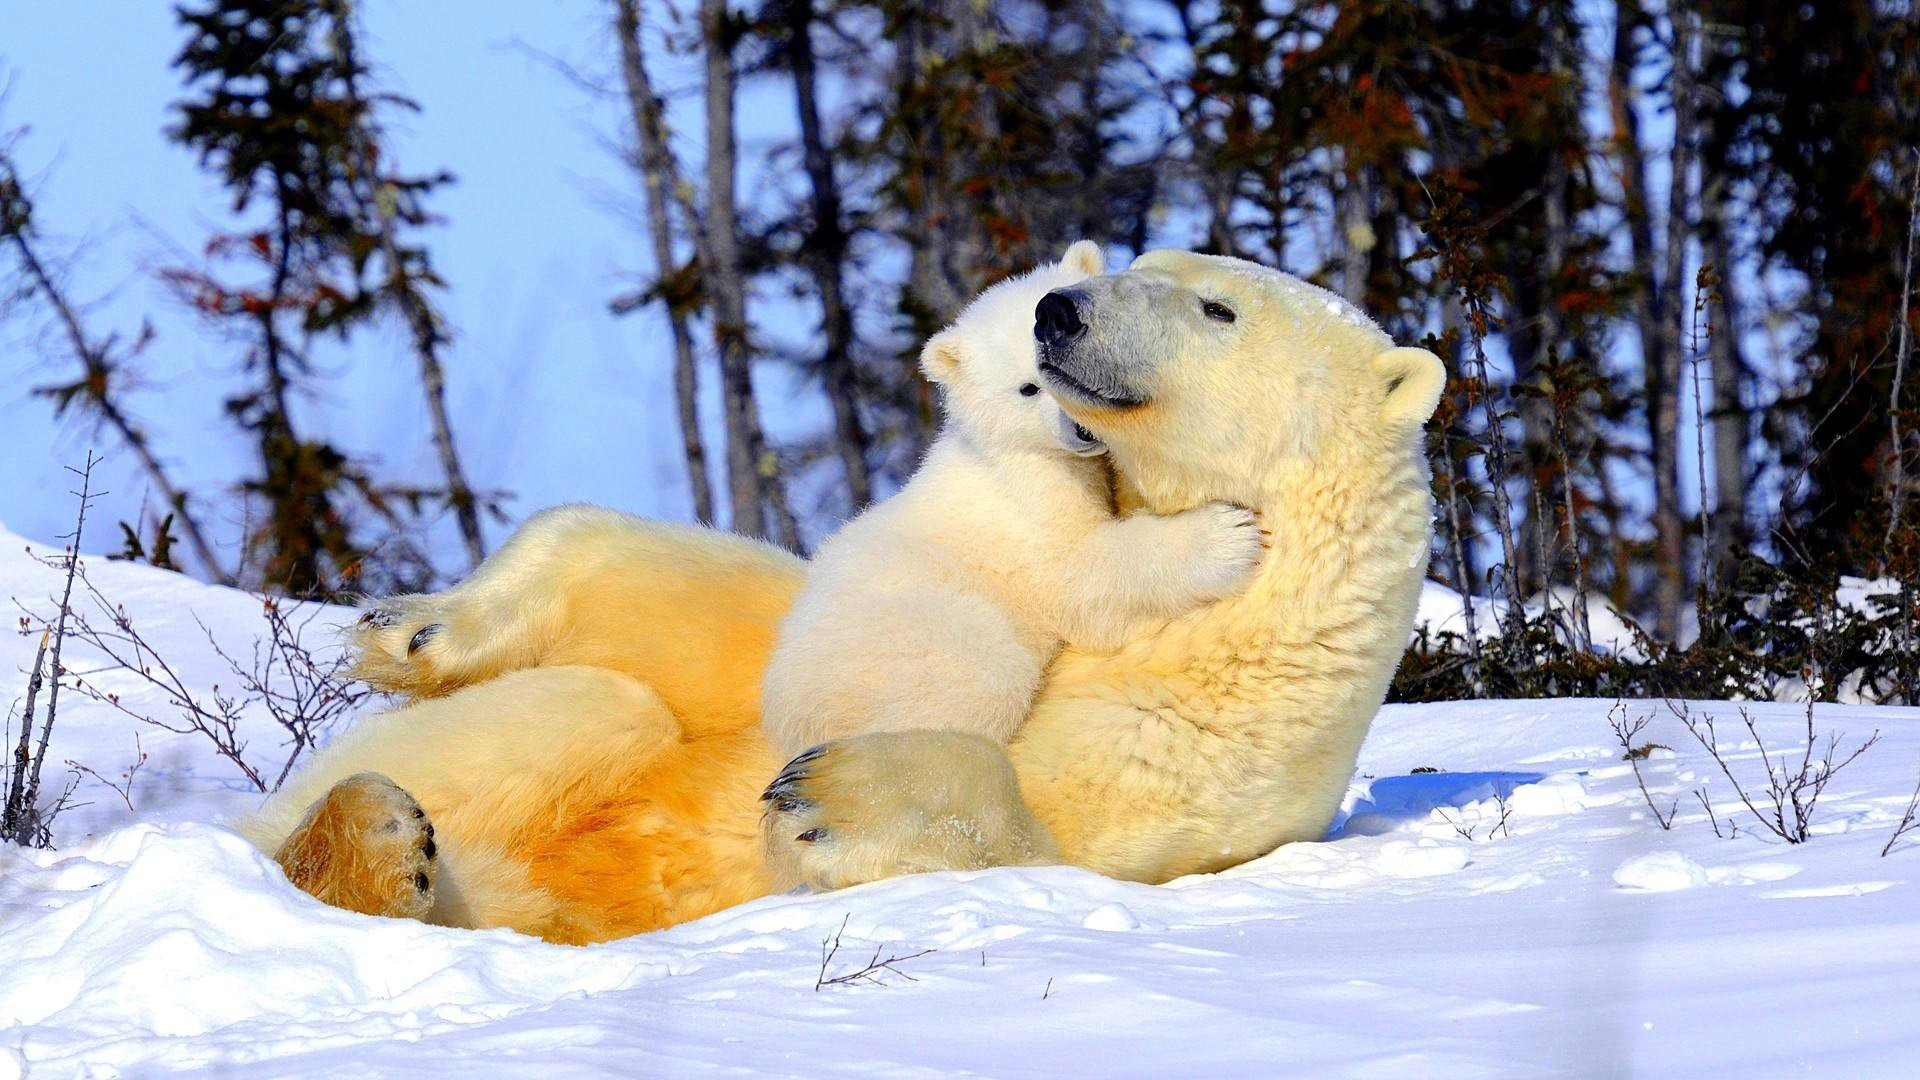 wallpaper and screensavers free polar bears - wallpapersafari